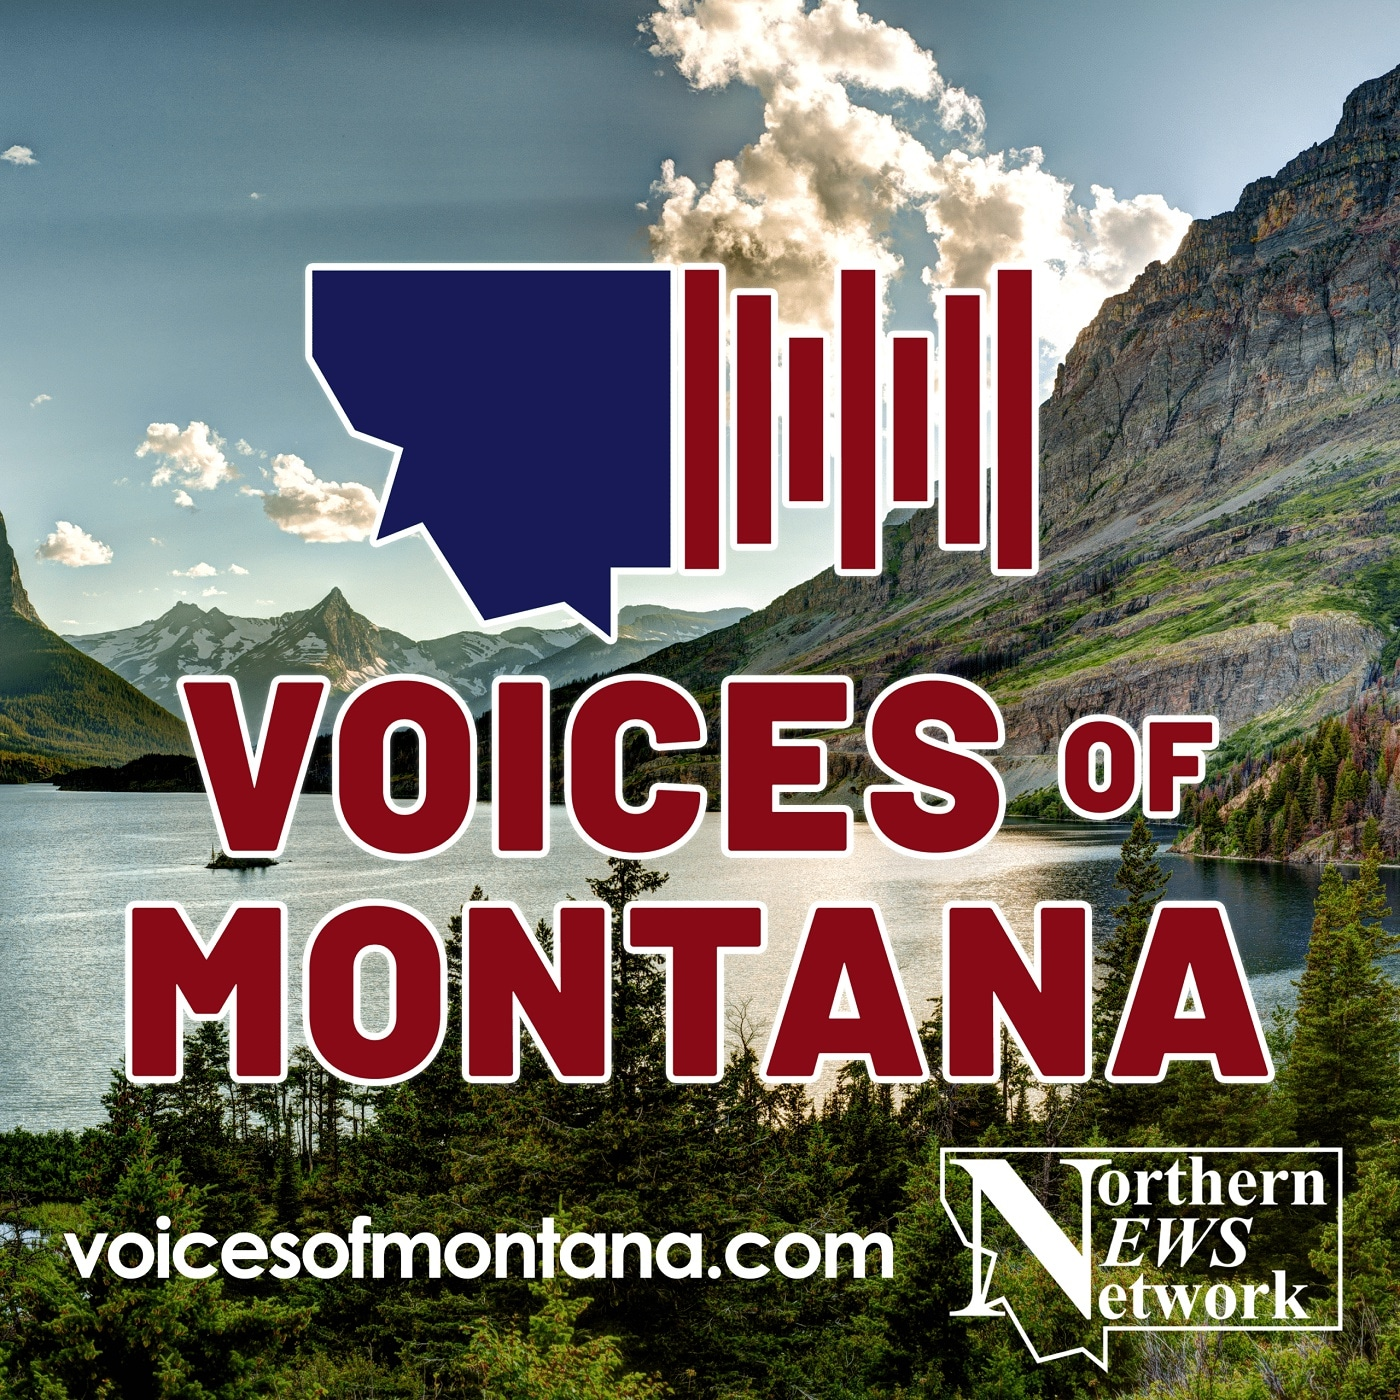 Voices of Montana